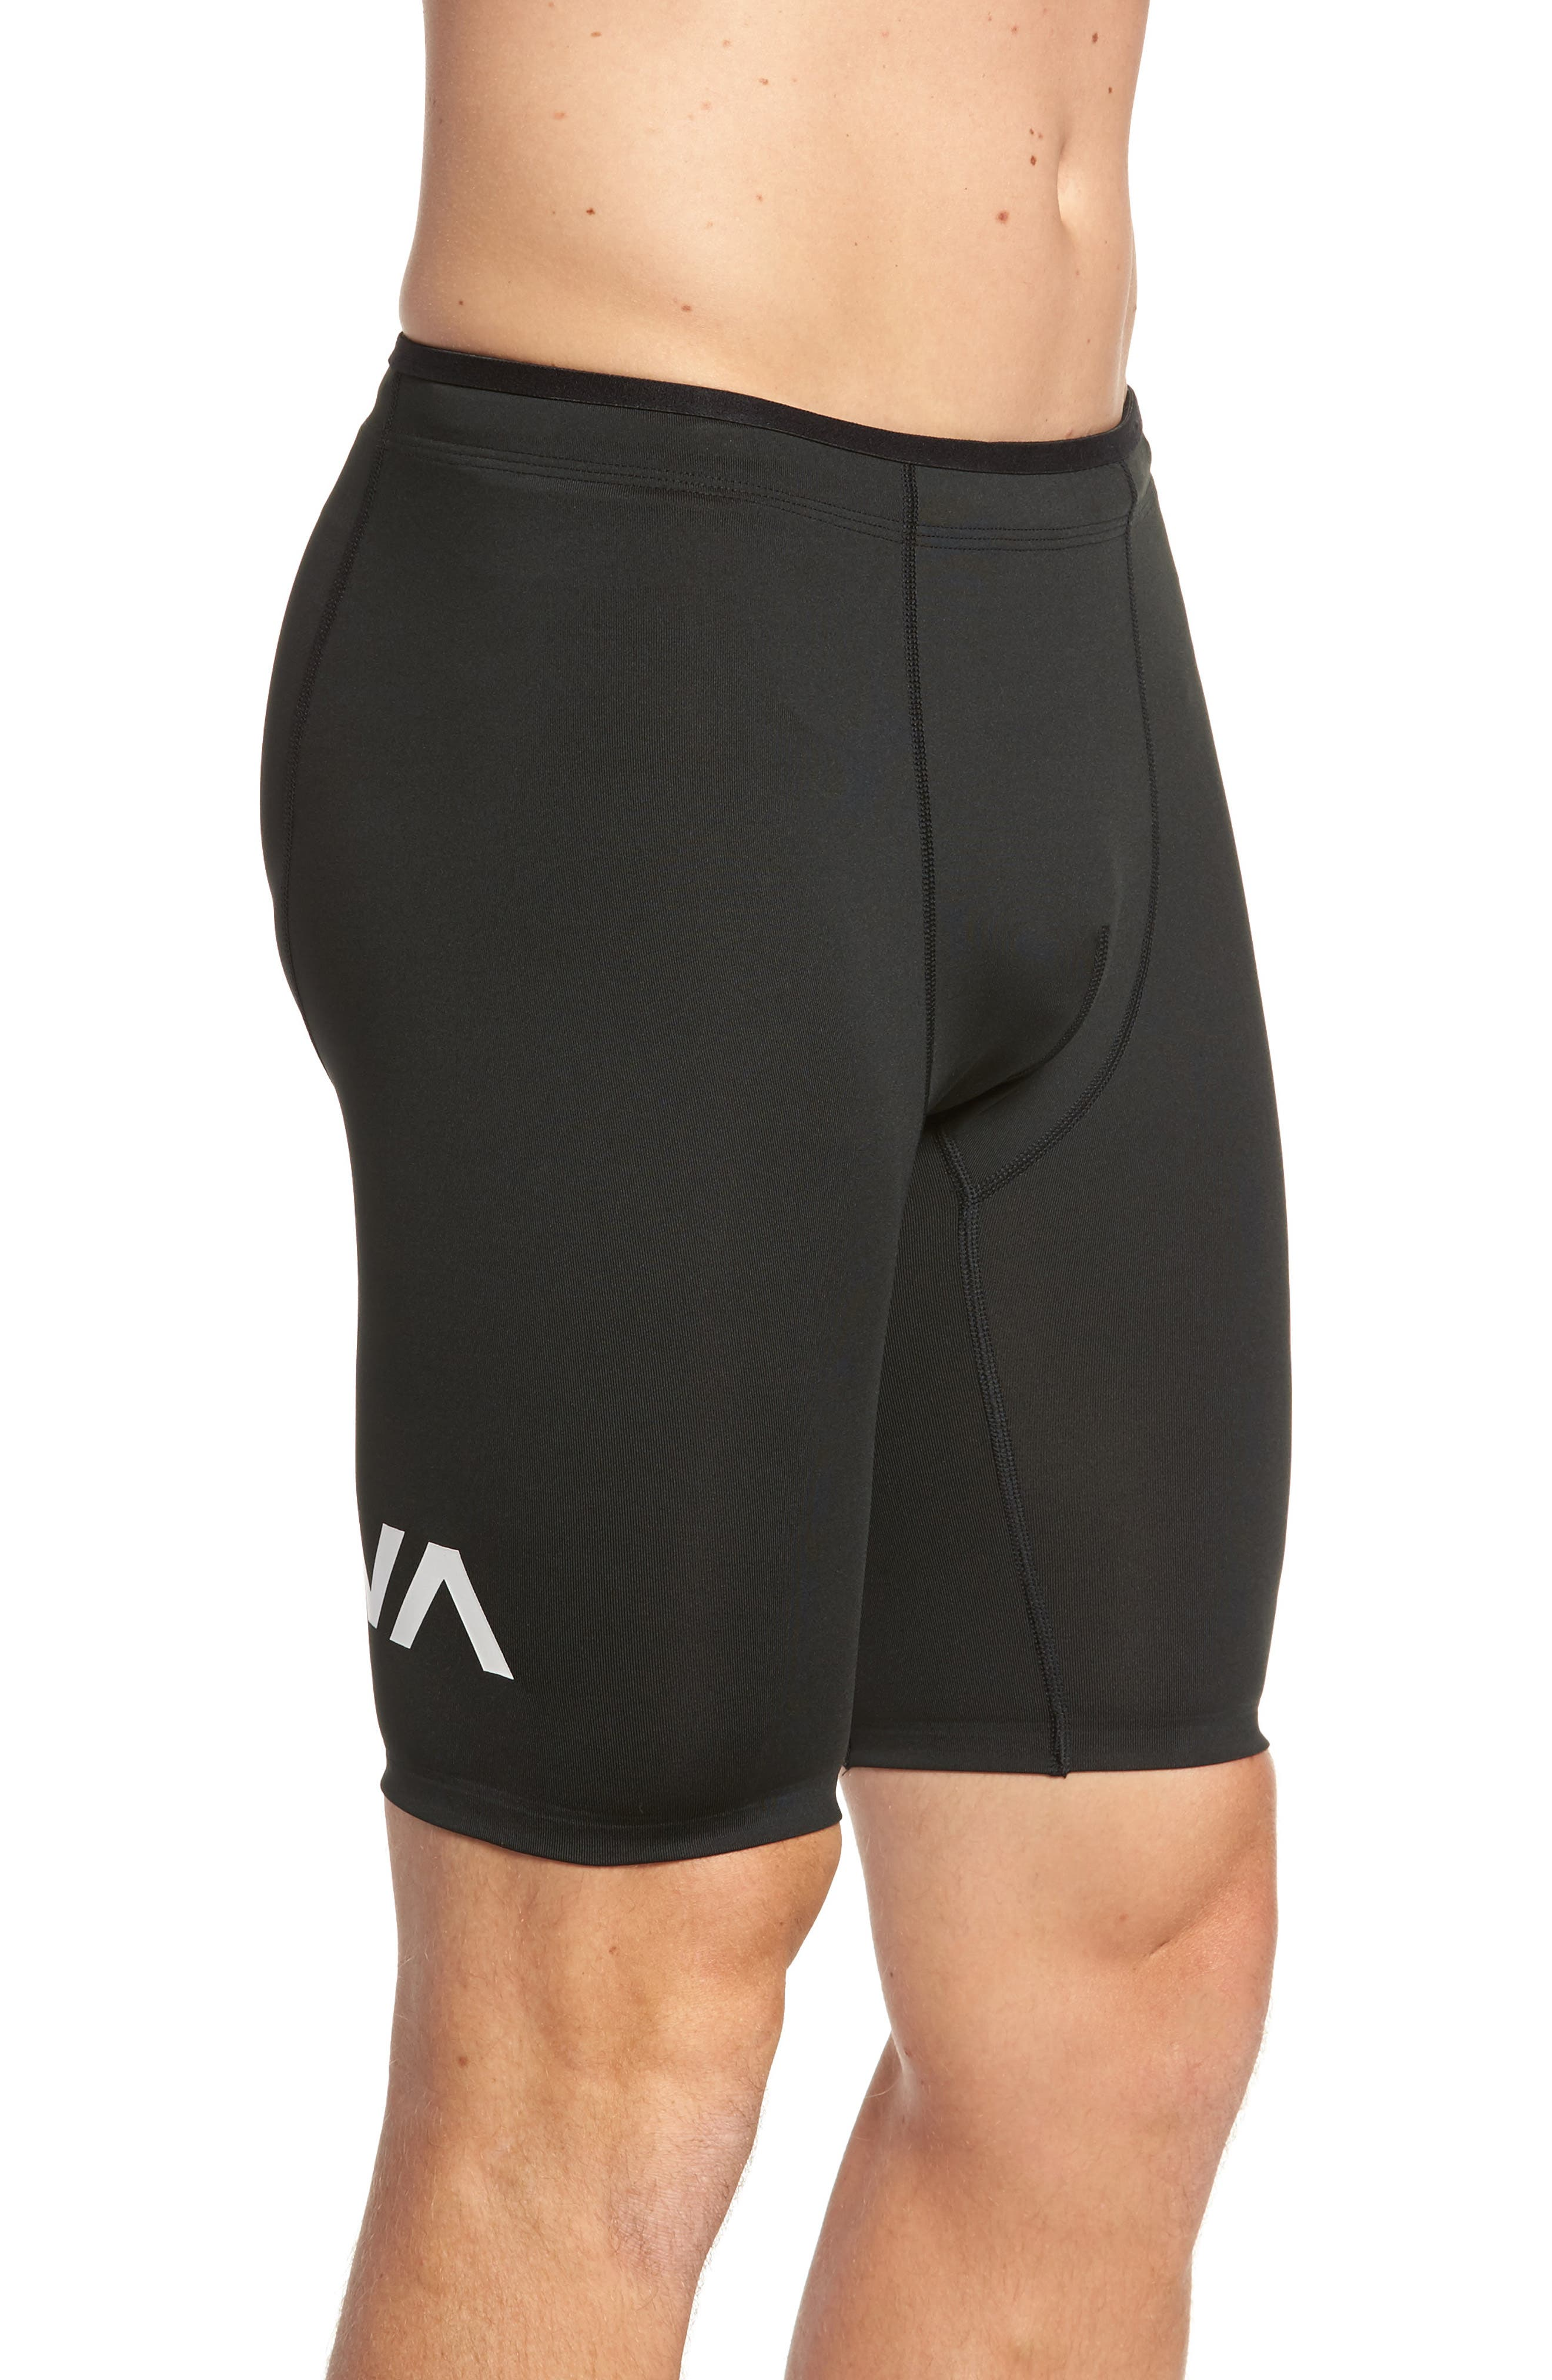 Sport Compression Shorts,                             Alternate thumbnail 4, color,                             001